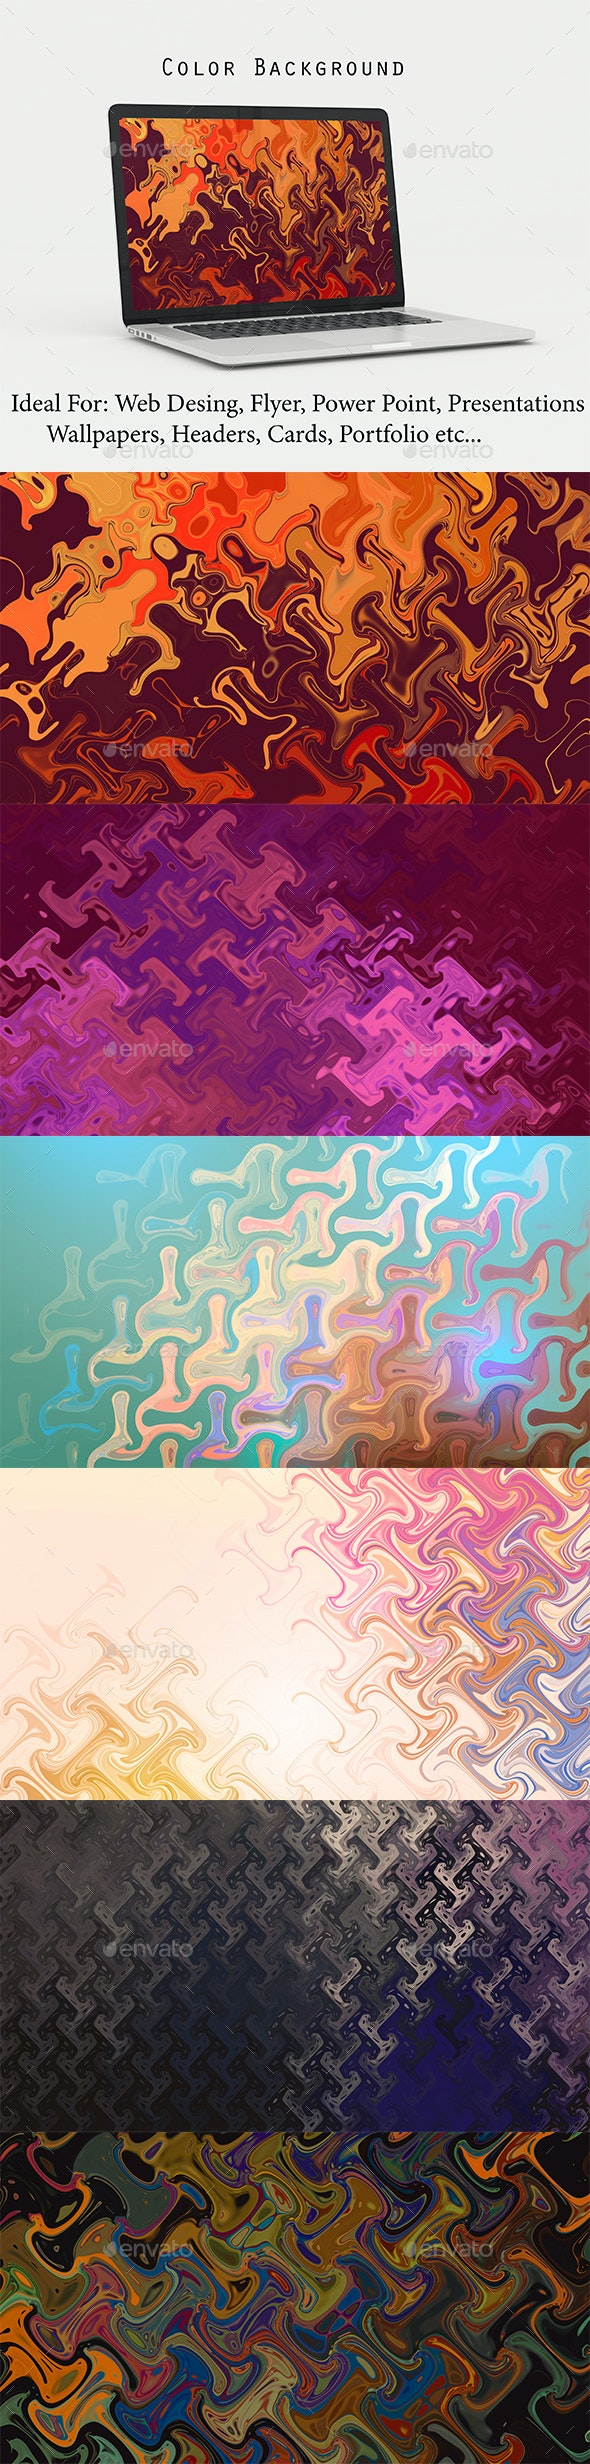 Color Background - Abstract Backgrounds